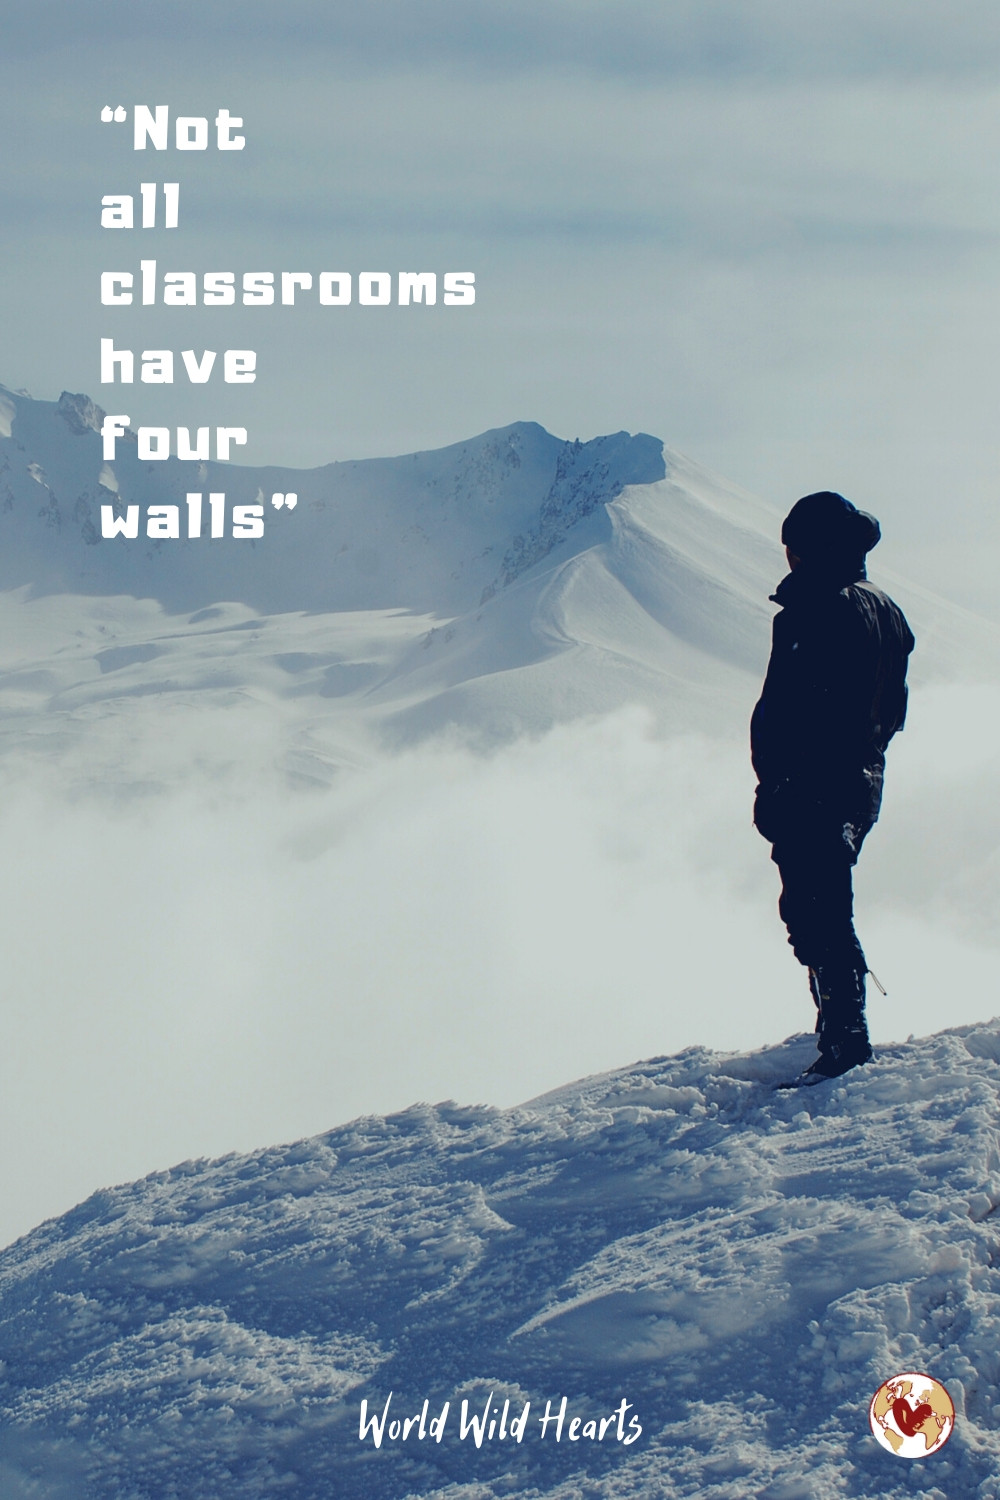 Not all classrooms have four walls quote